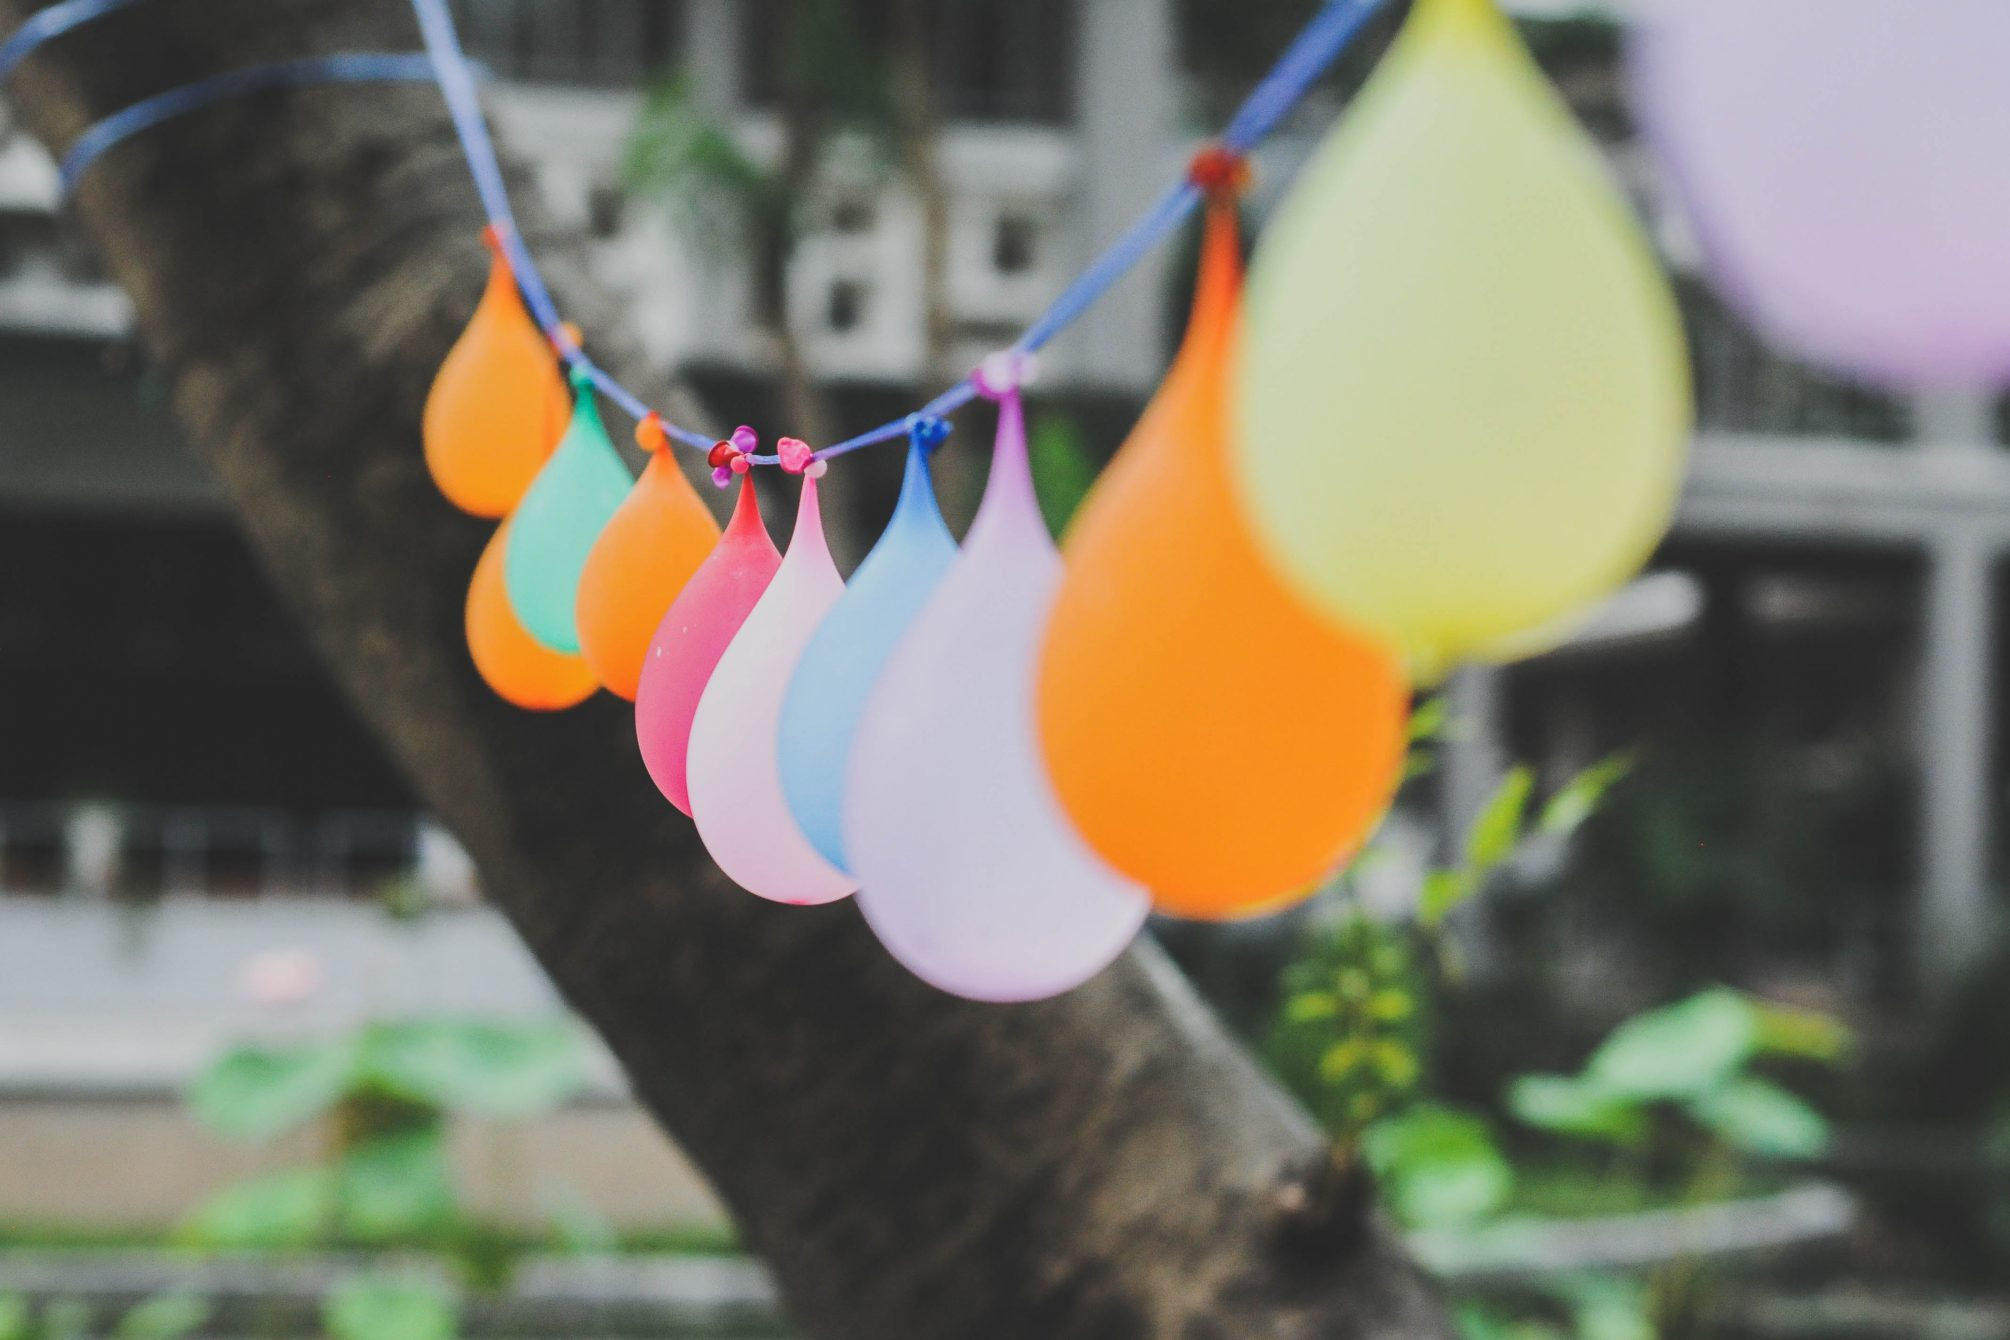 selective focus photography of balloons